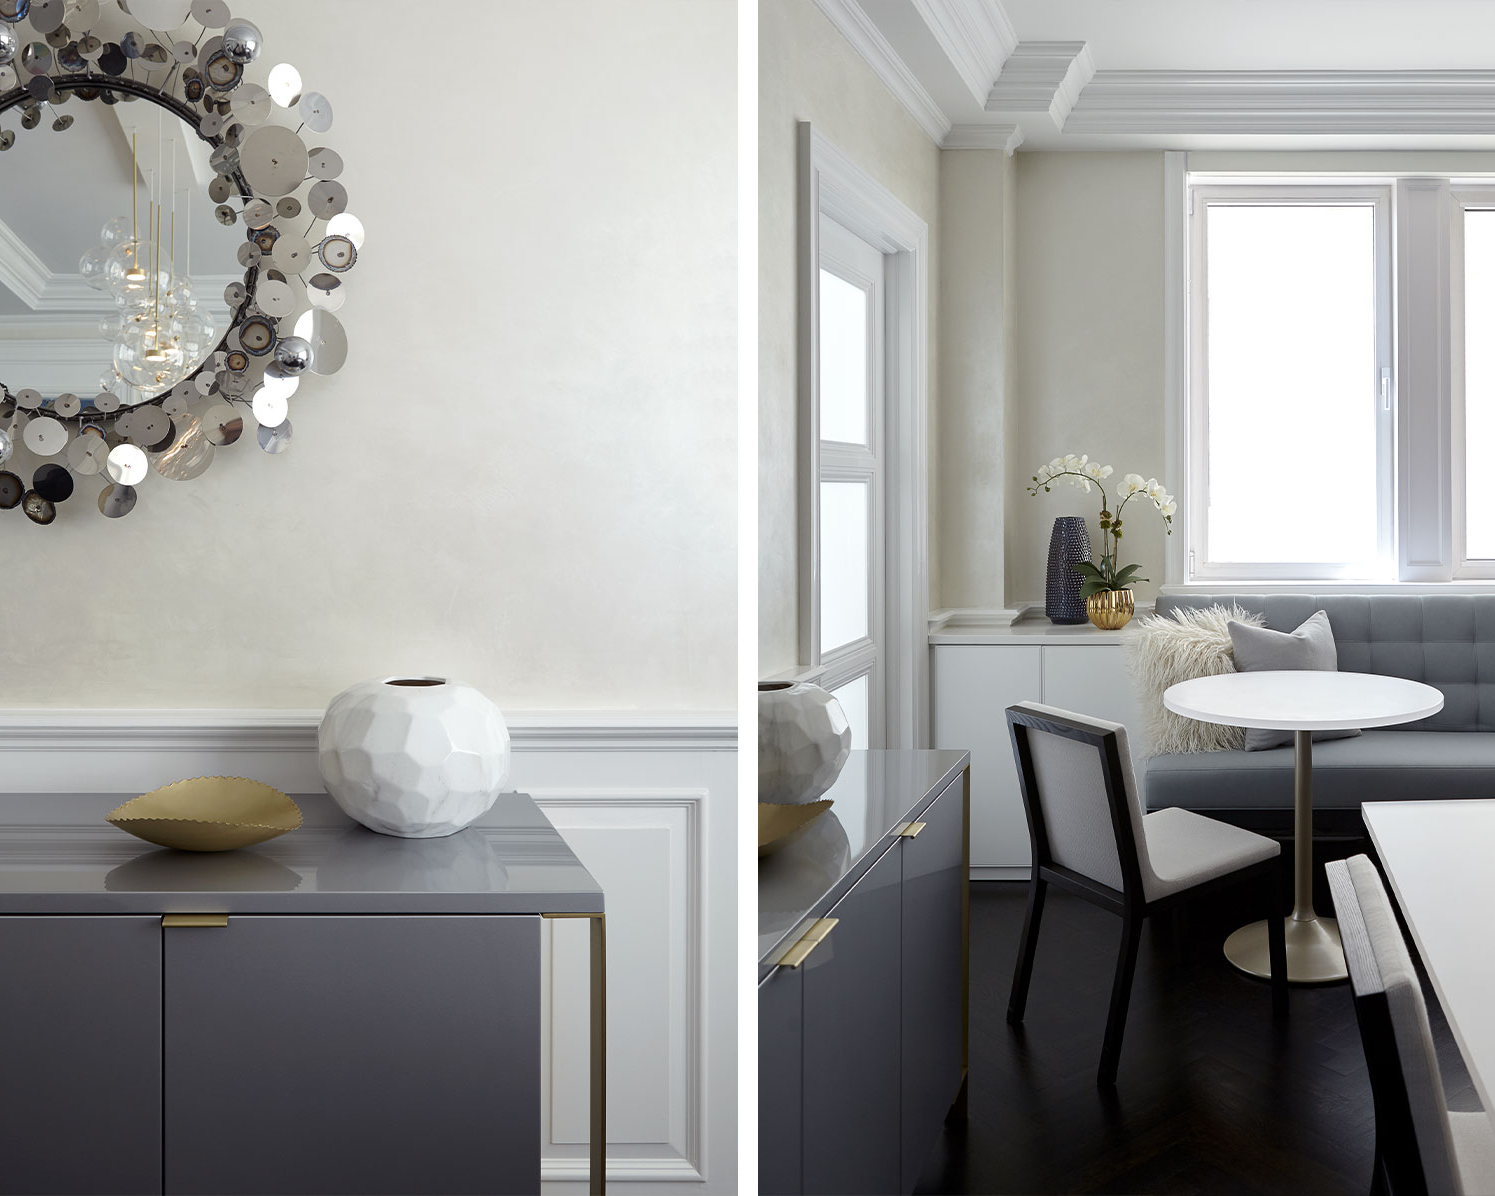 NYC apartment dining room interior design by NYC's top interior design firm Darci Hether New York